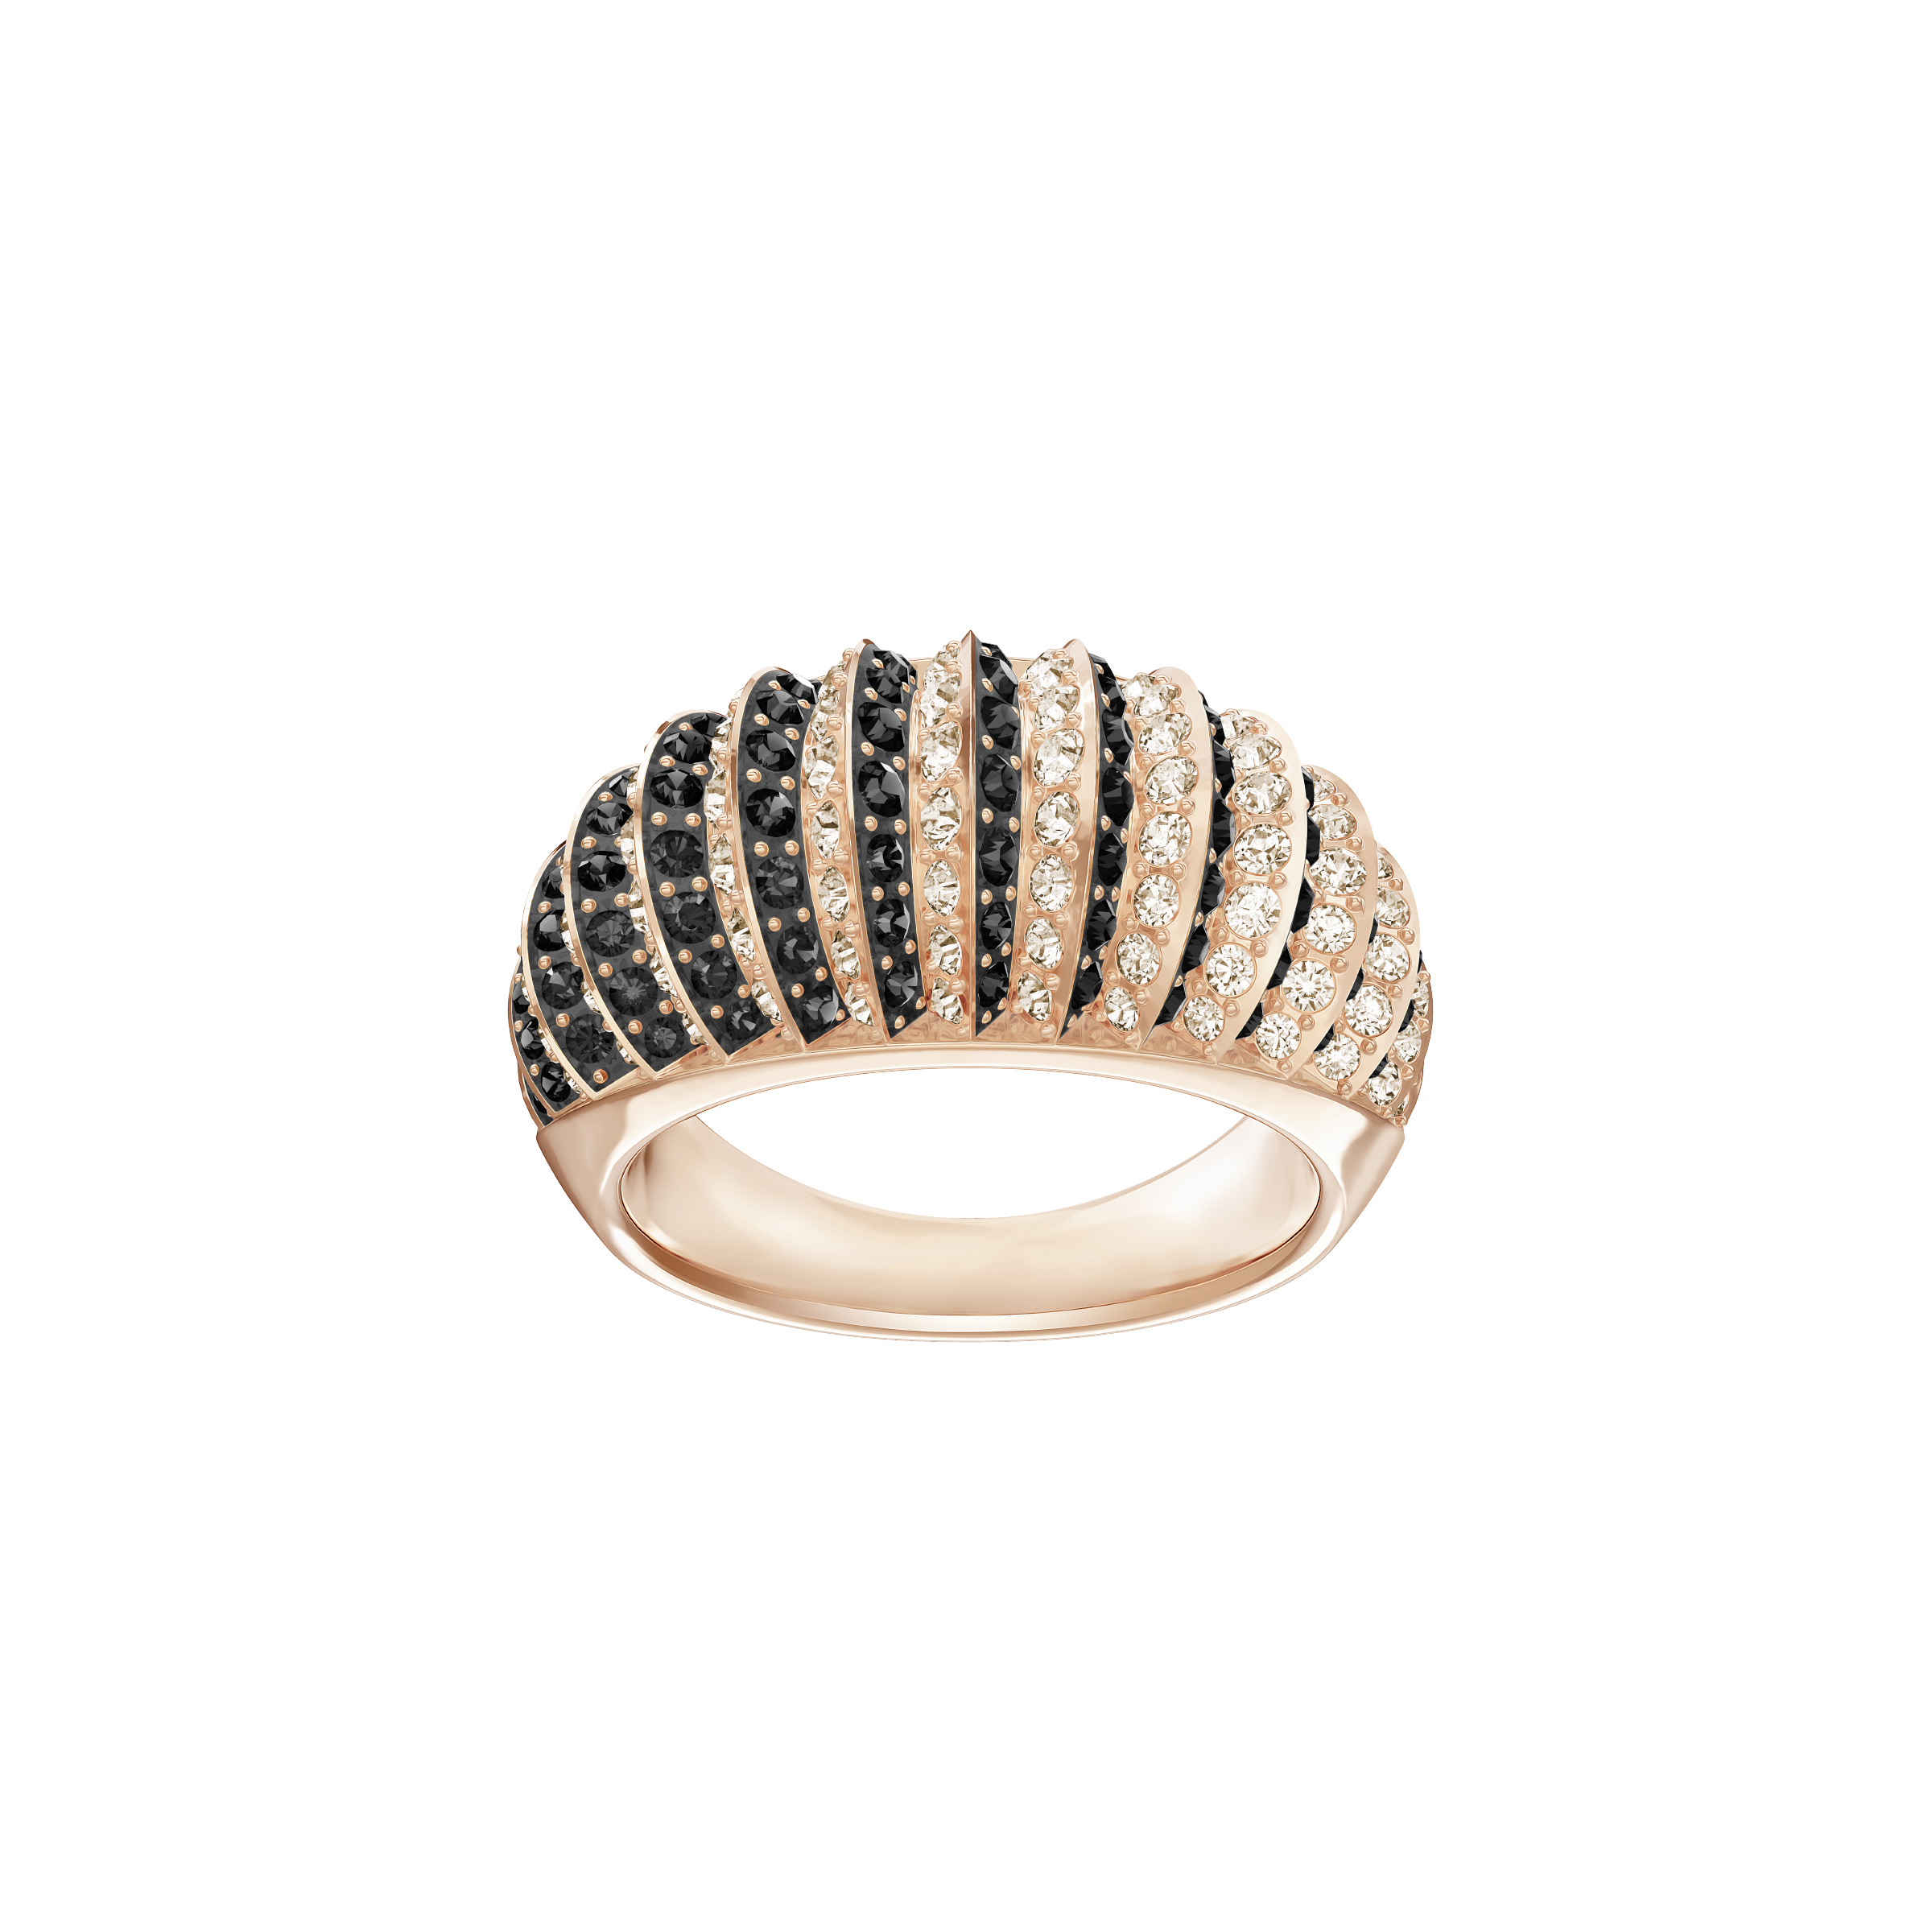 Luxury Domed Ring, Black, Rose-gold tone plated